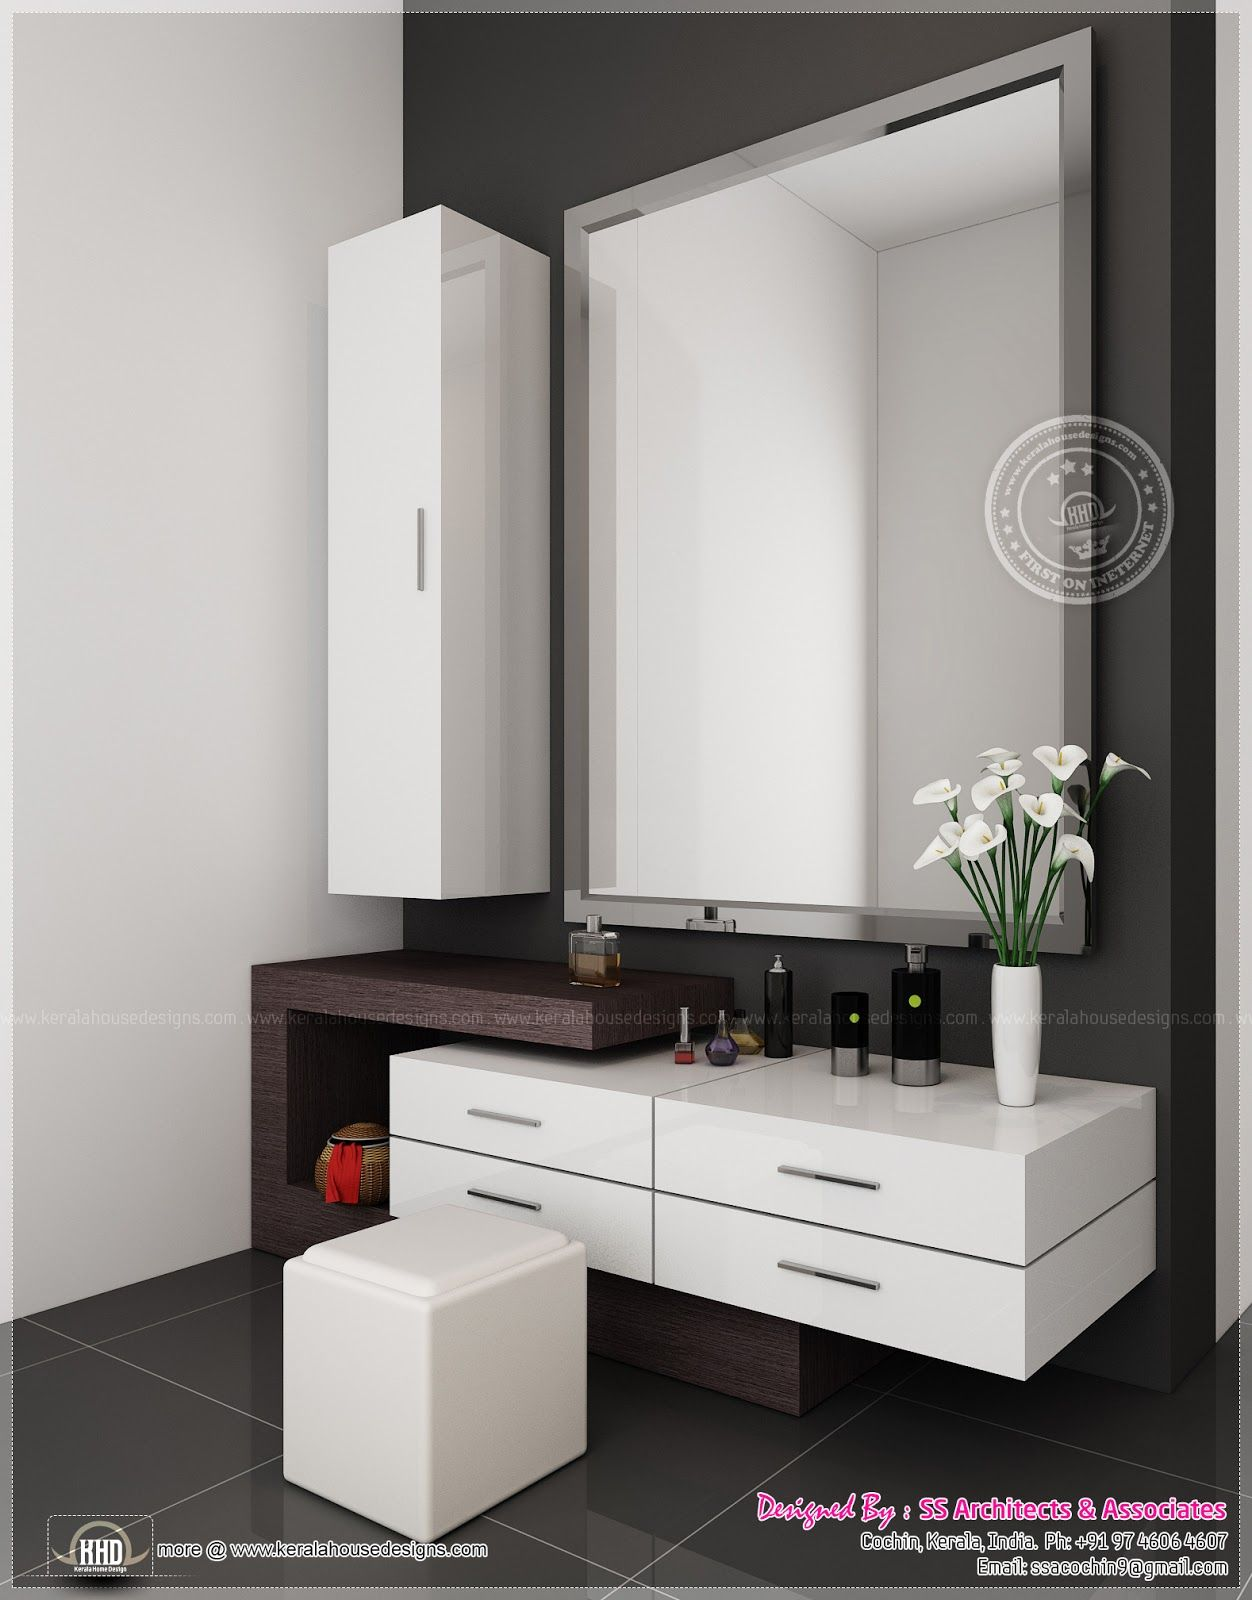 Bedroom table designs - Cool Dressing Table Design Designs Small For Bedroom With Almirah Simple Full Length Mirror In Wood